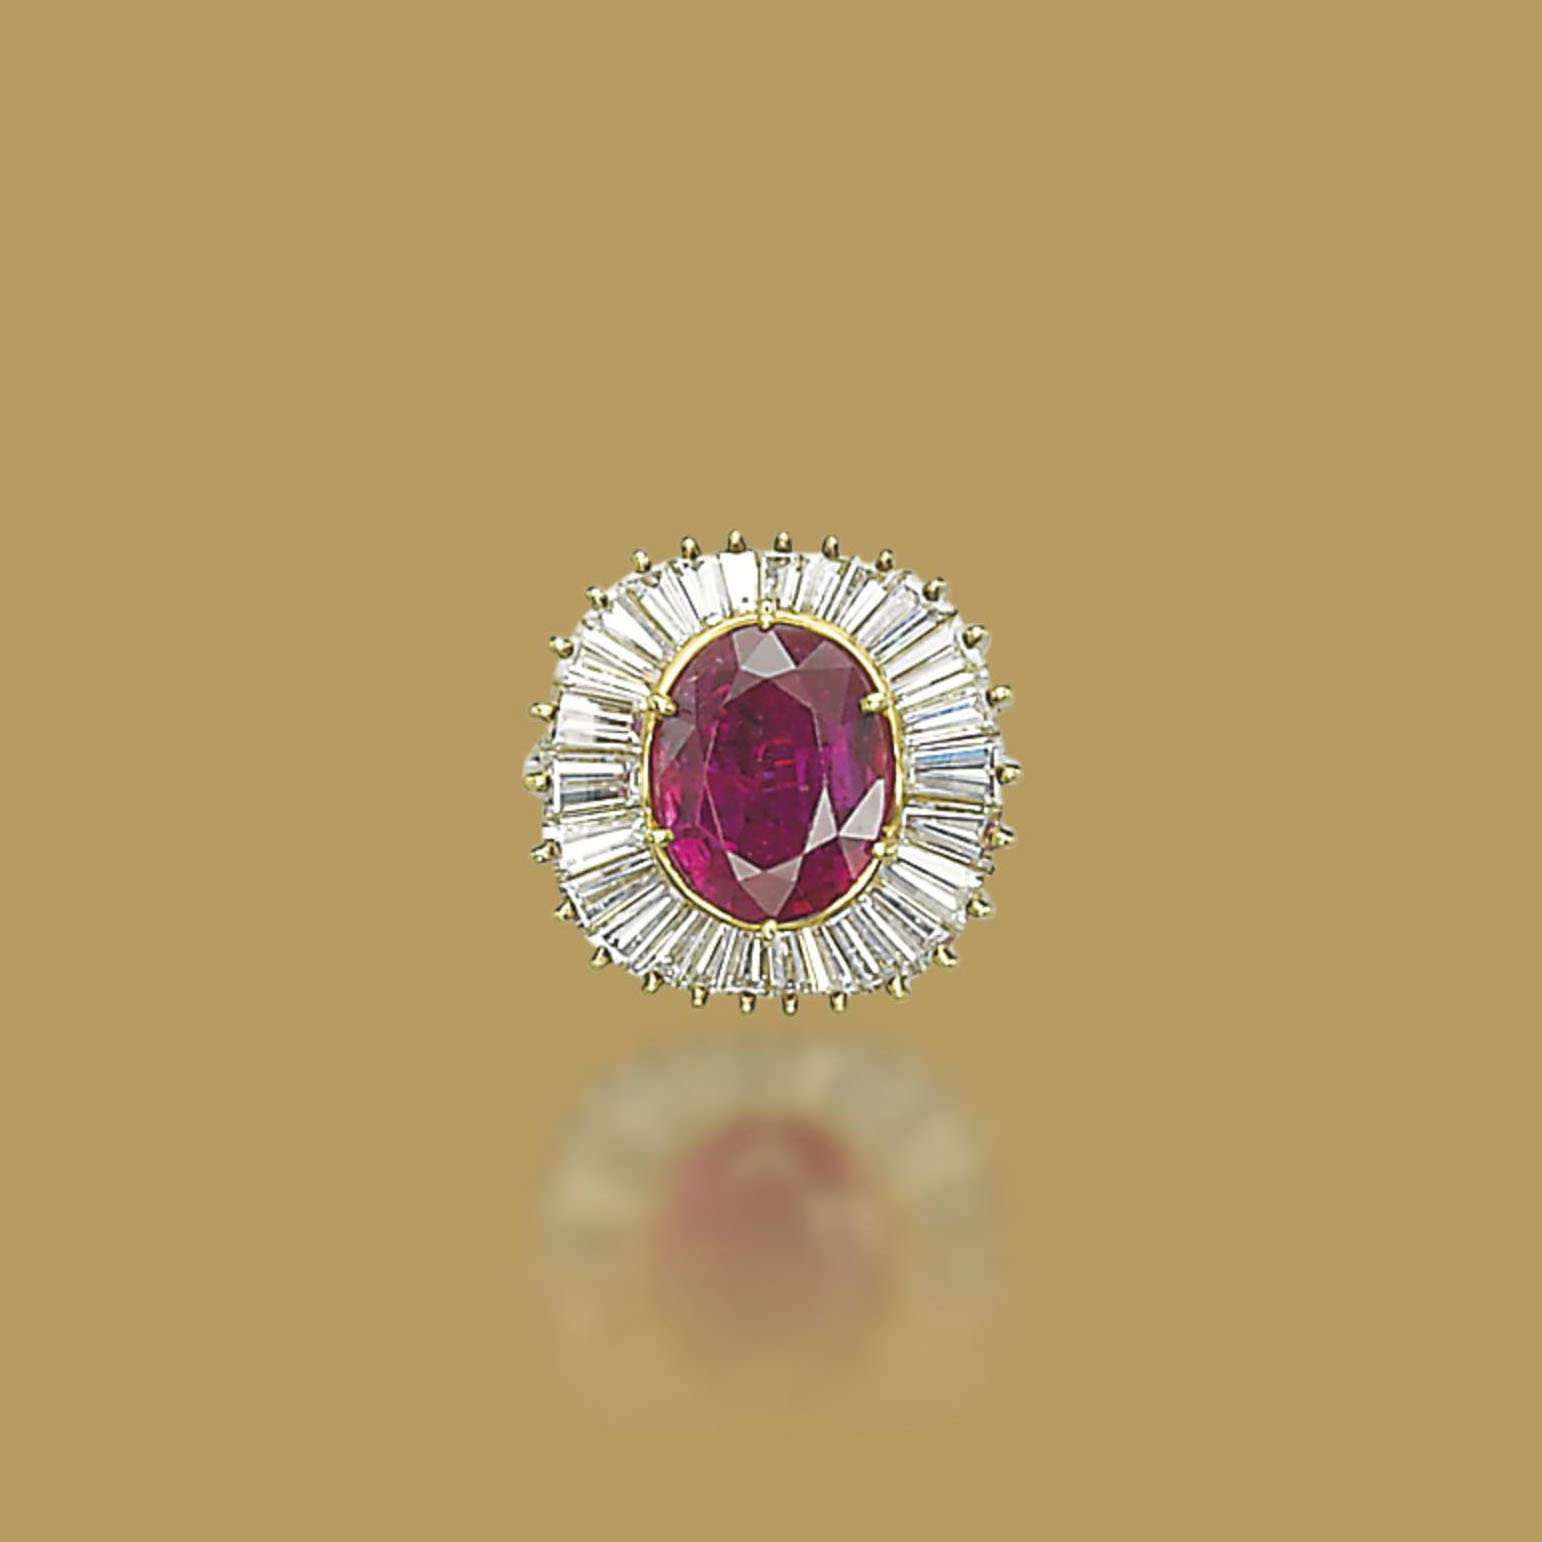 A RUBY AND DIAMOND RING, BY MEISTER